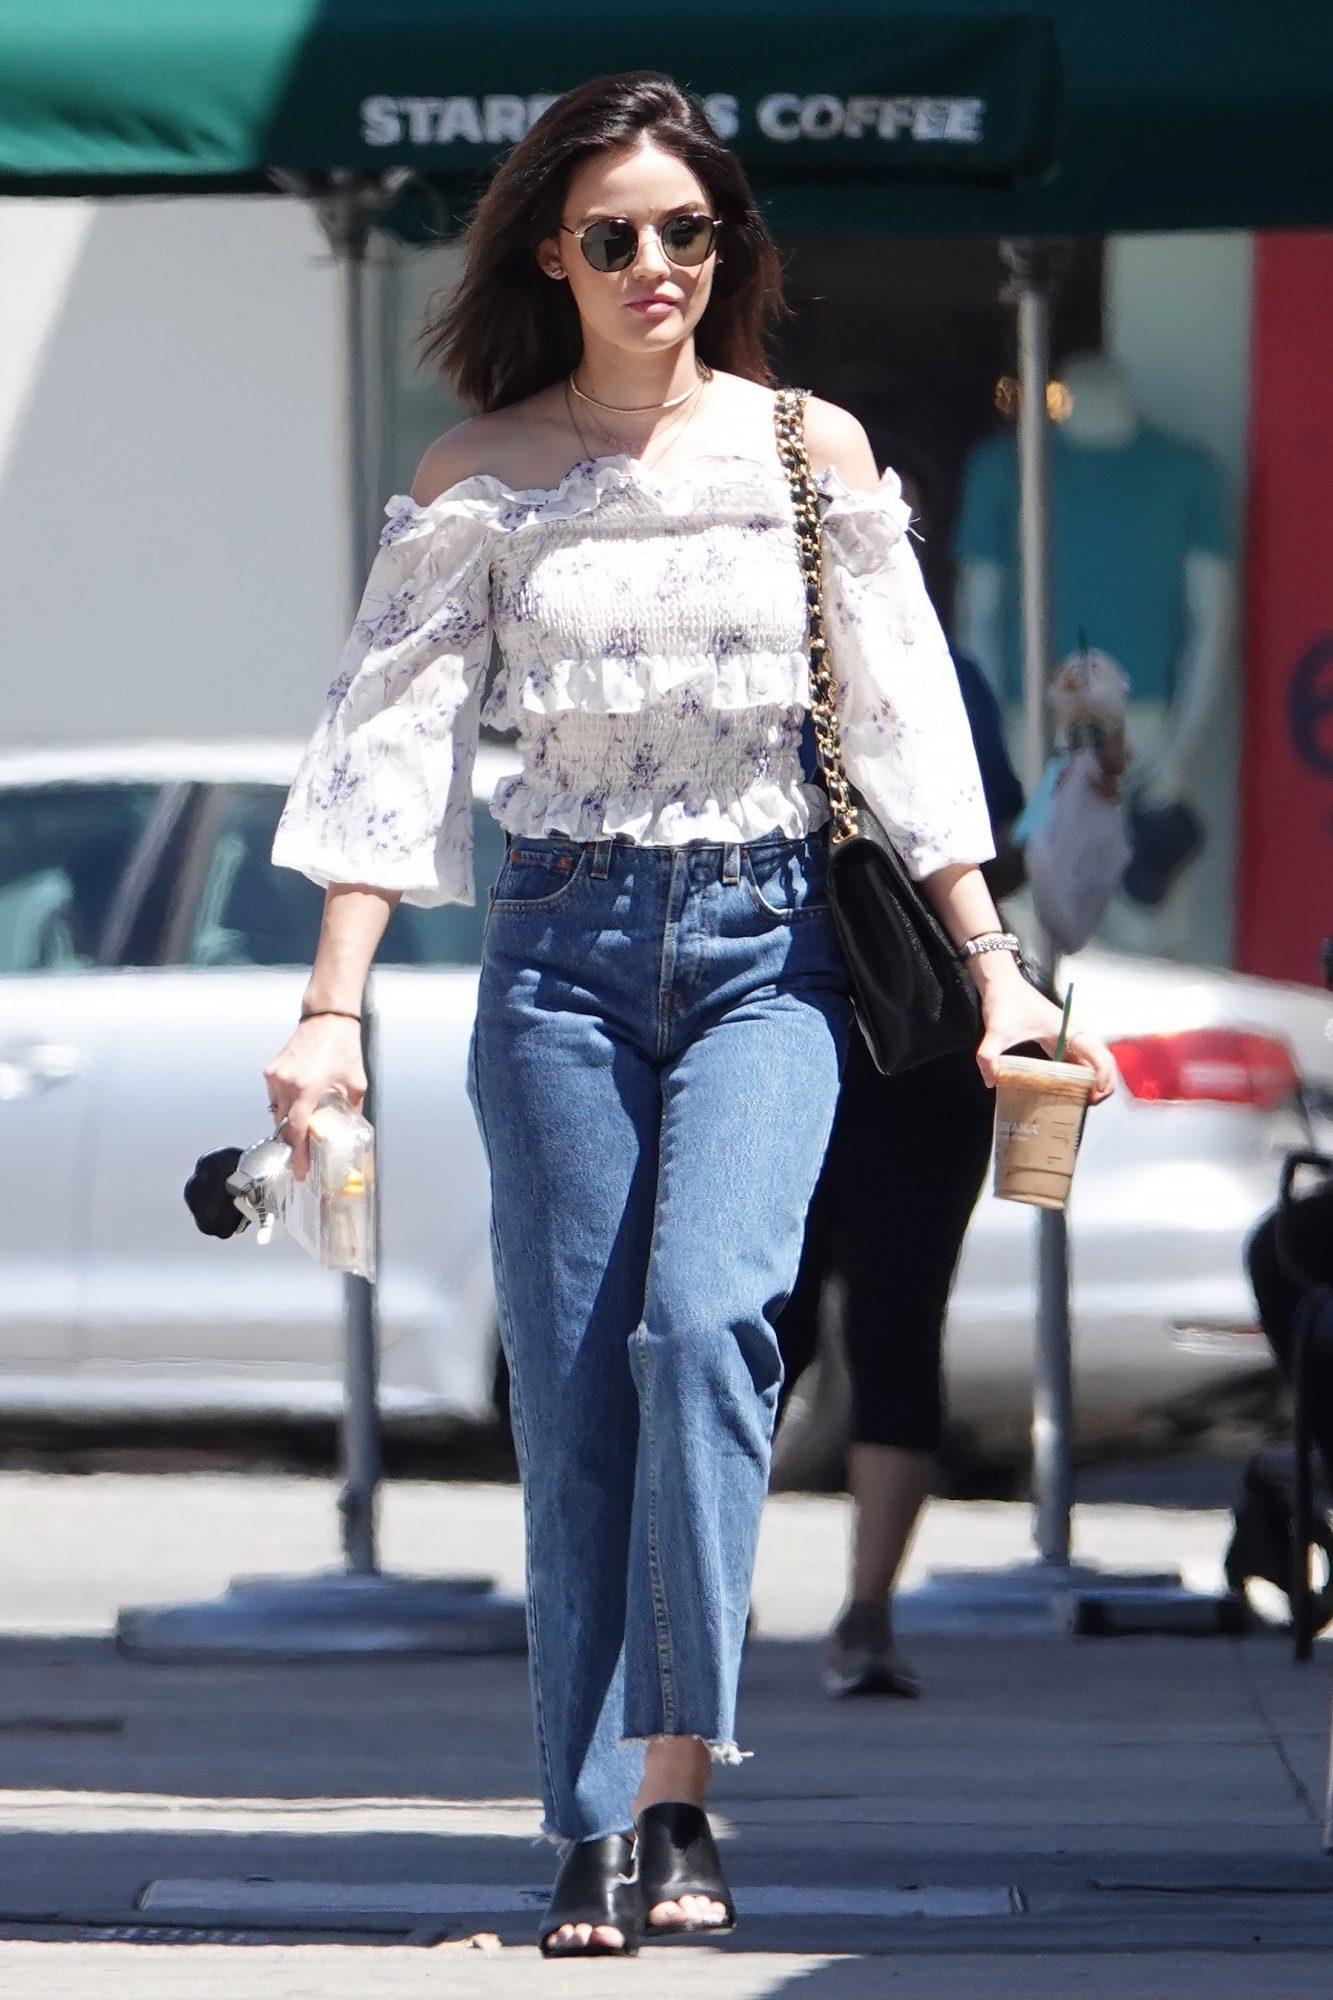 EXCLUSIVE: Fashion Icon And Actress Lucy Hale Is Seen Out And About In Los Angeles